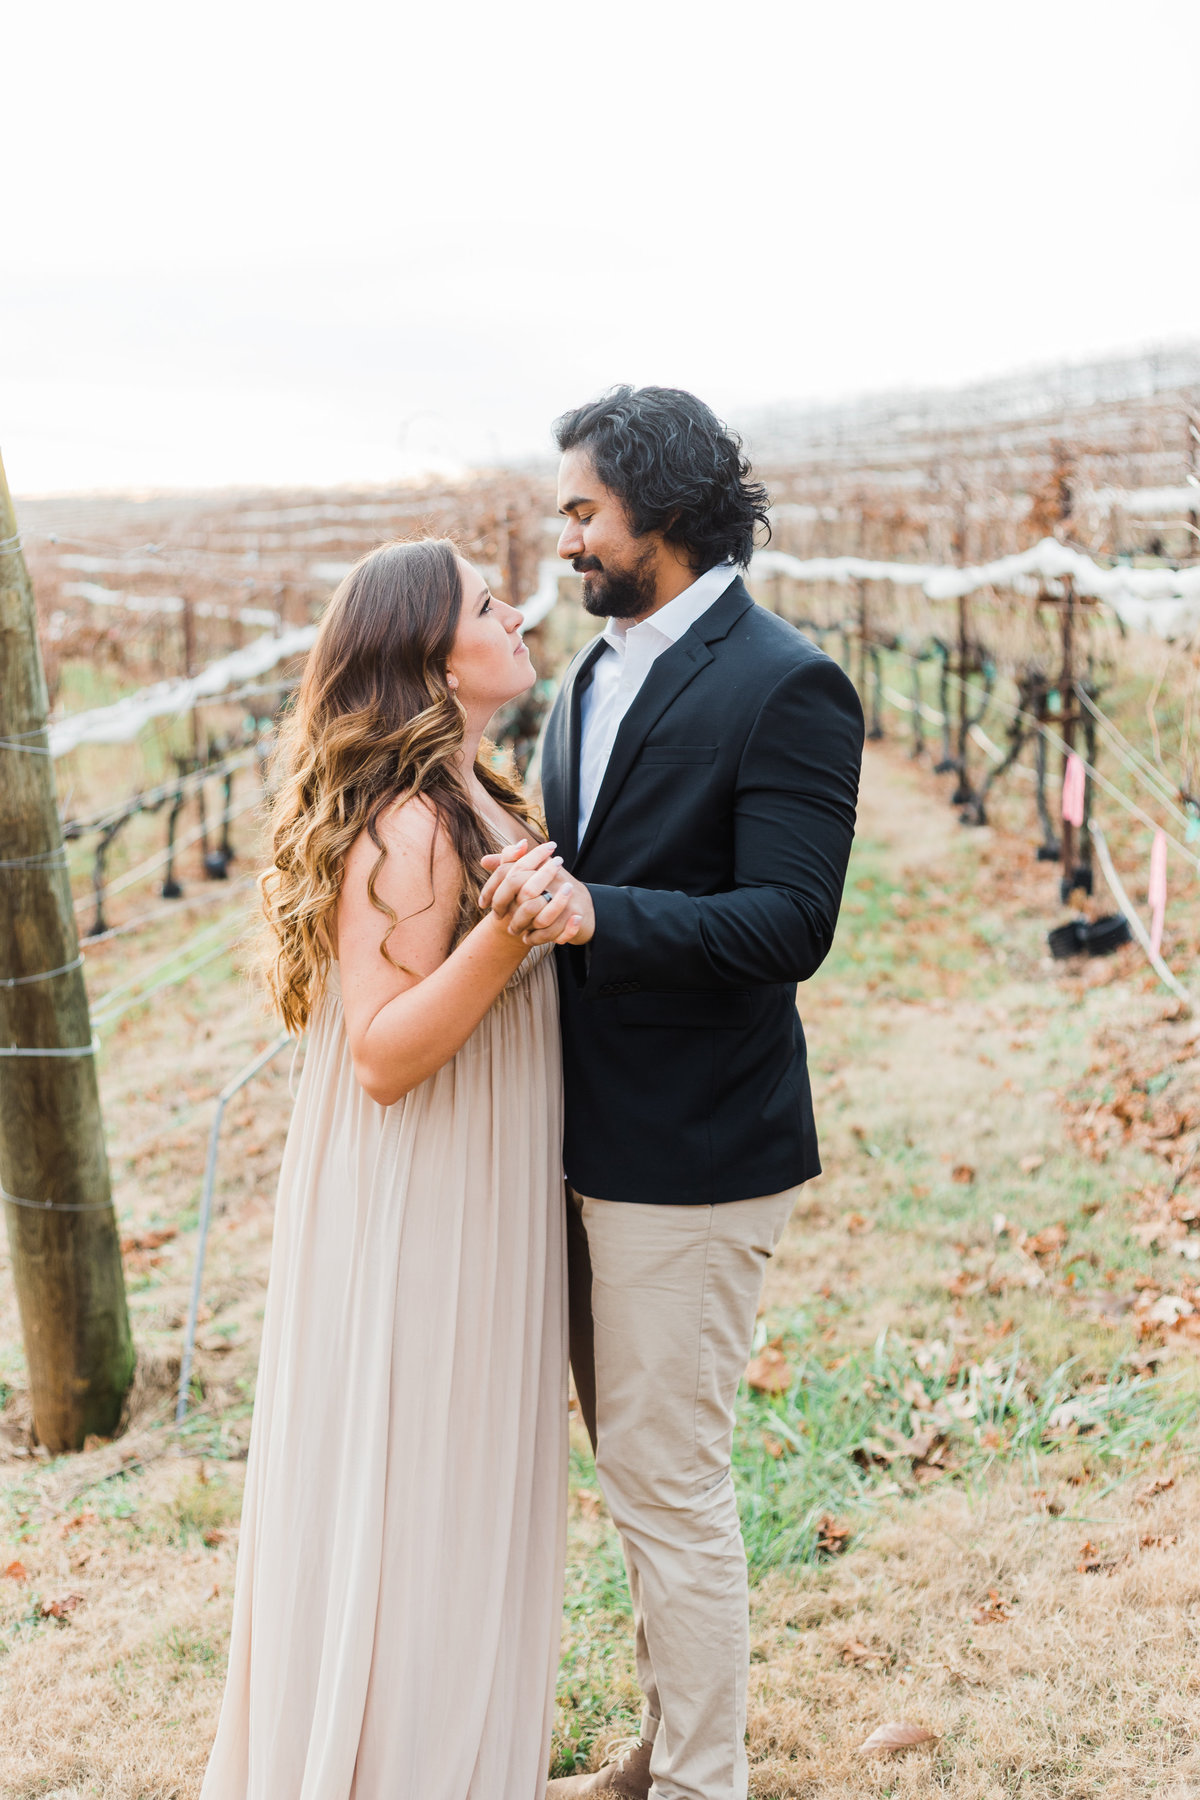 Motaluce Winery, Gainesville, GA Couple Engagement Anniversary Photography Session by Renee Jael-19